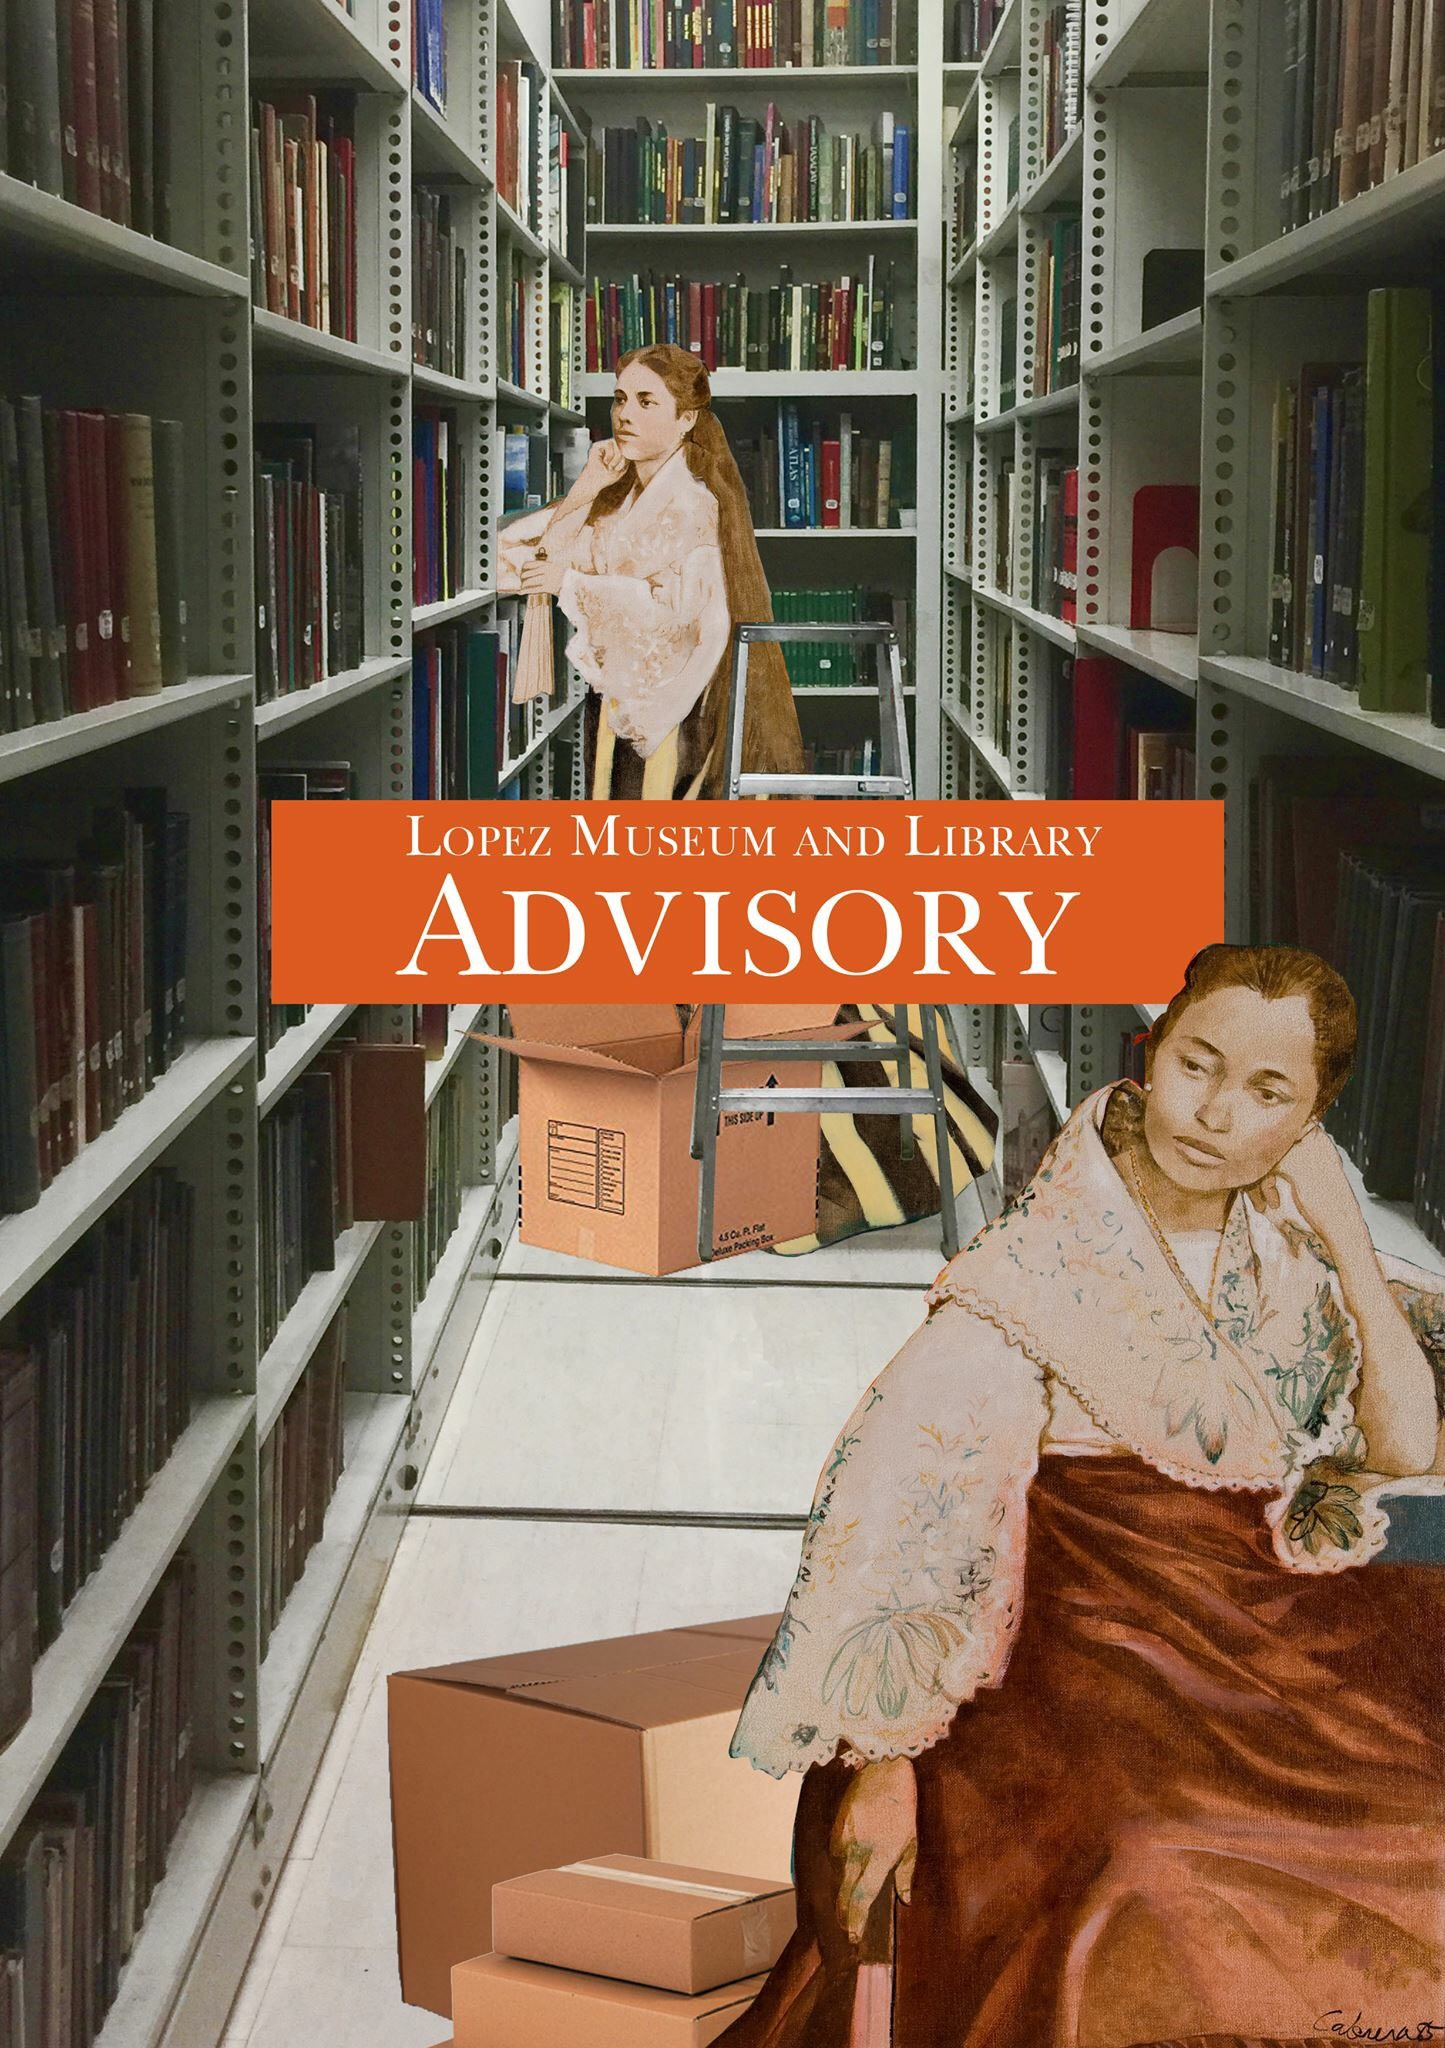 Lopez Museum and Library Advisory